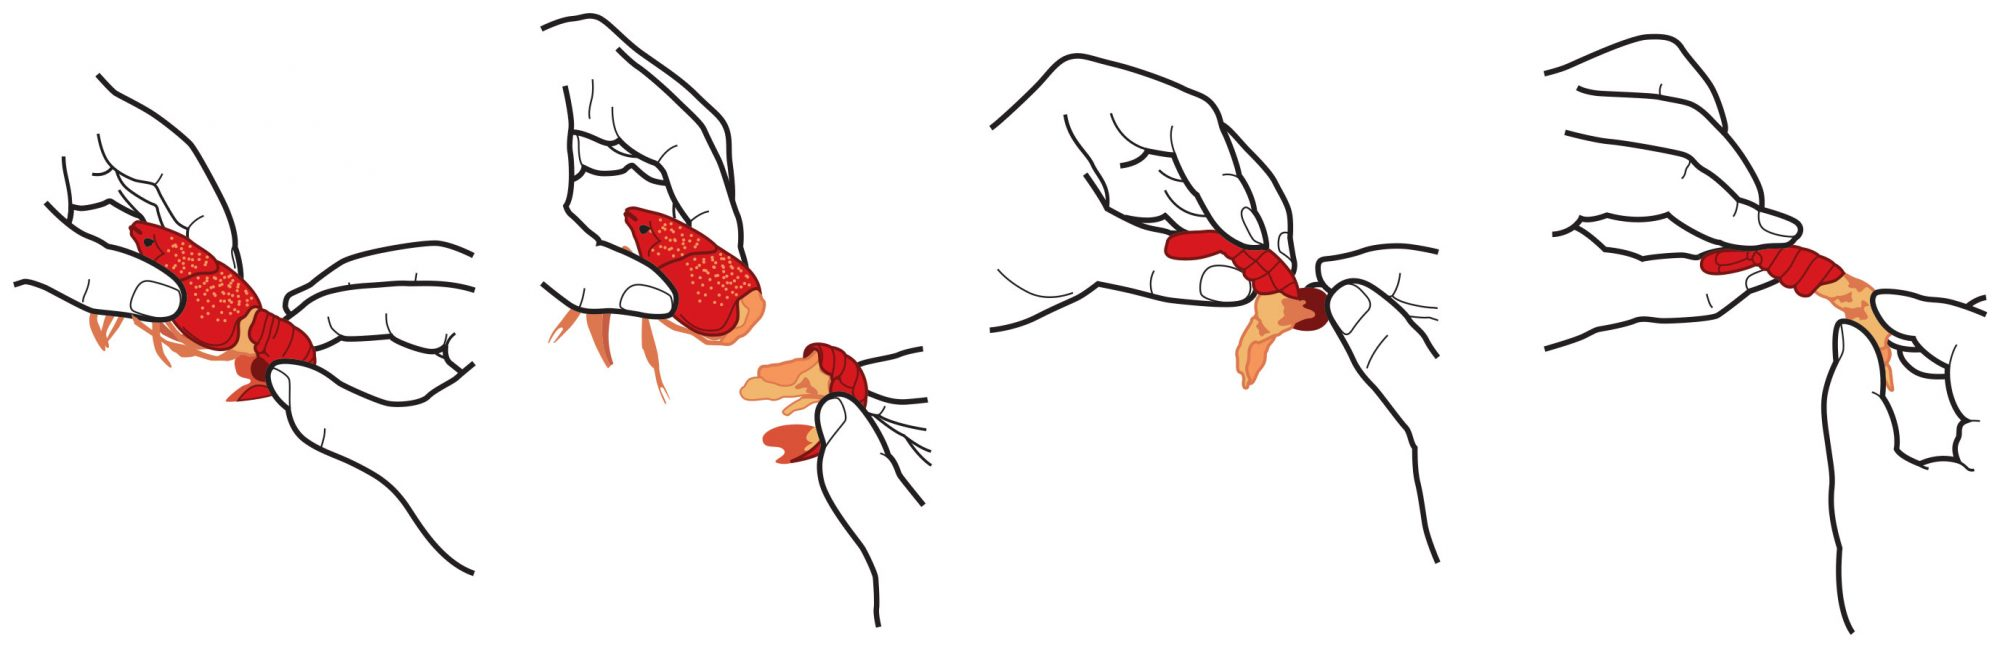 How To Eat Boiled Crawfish: Peel